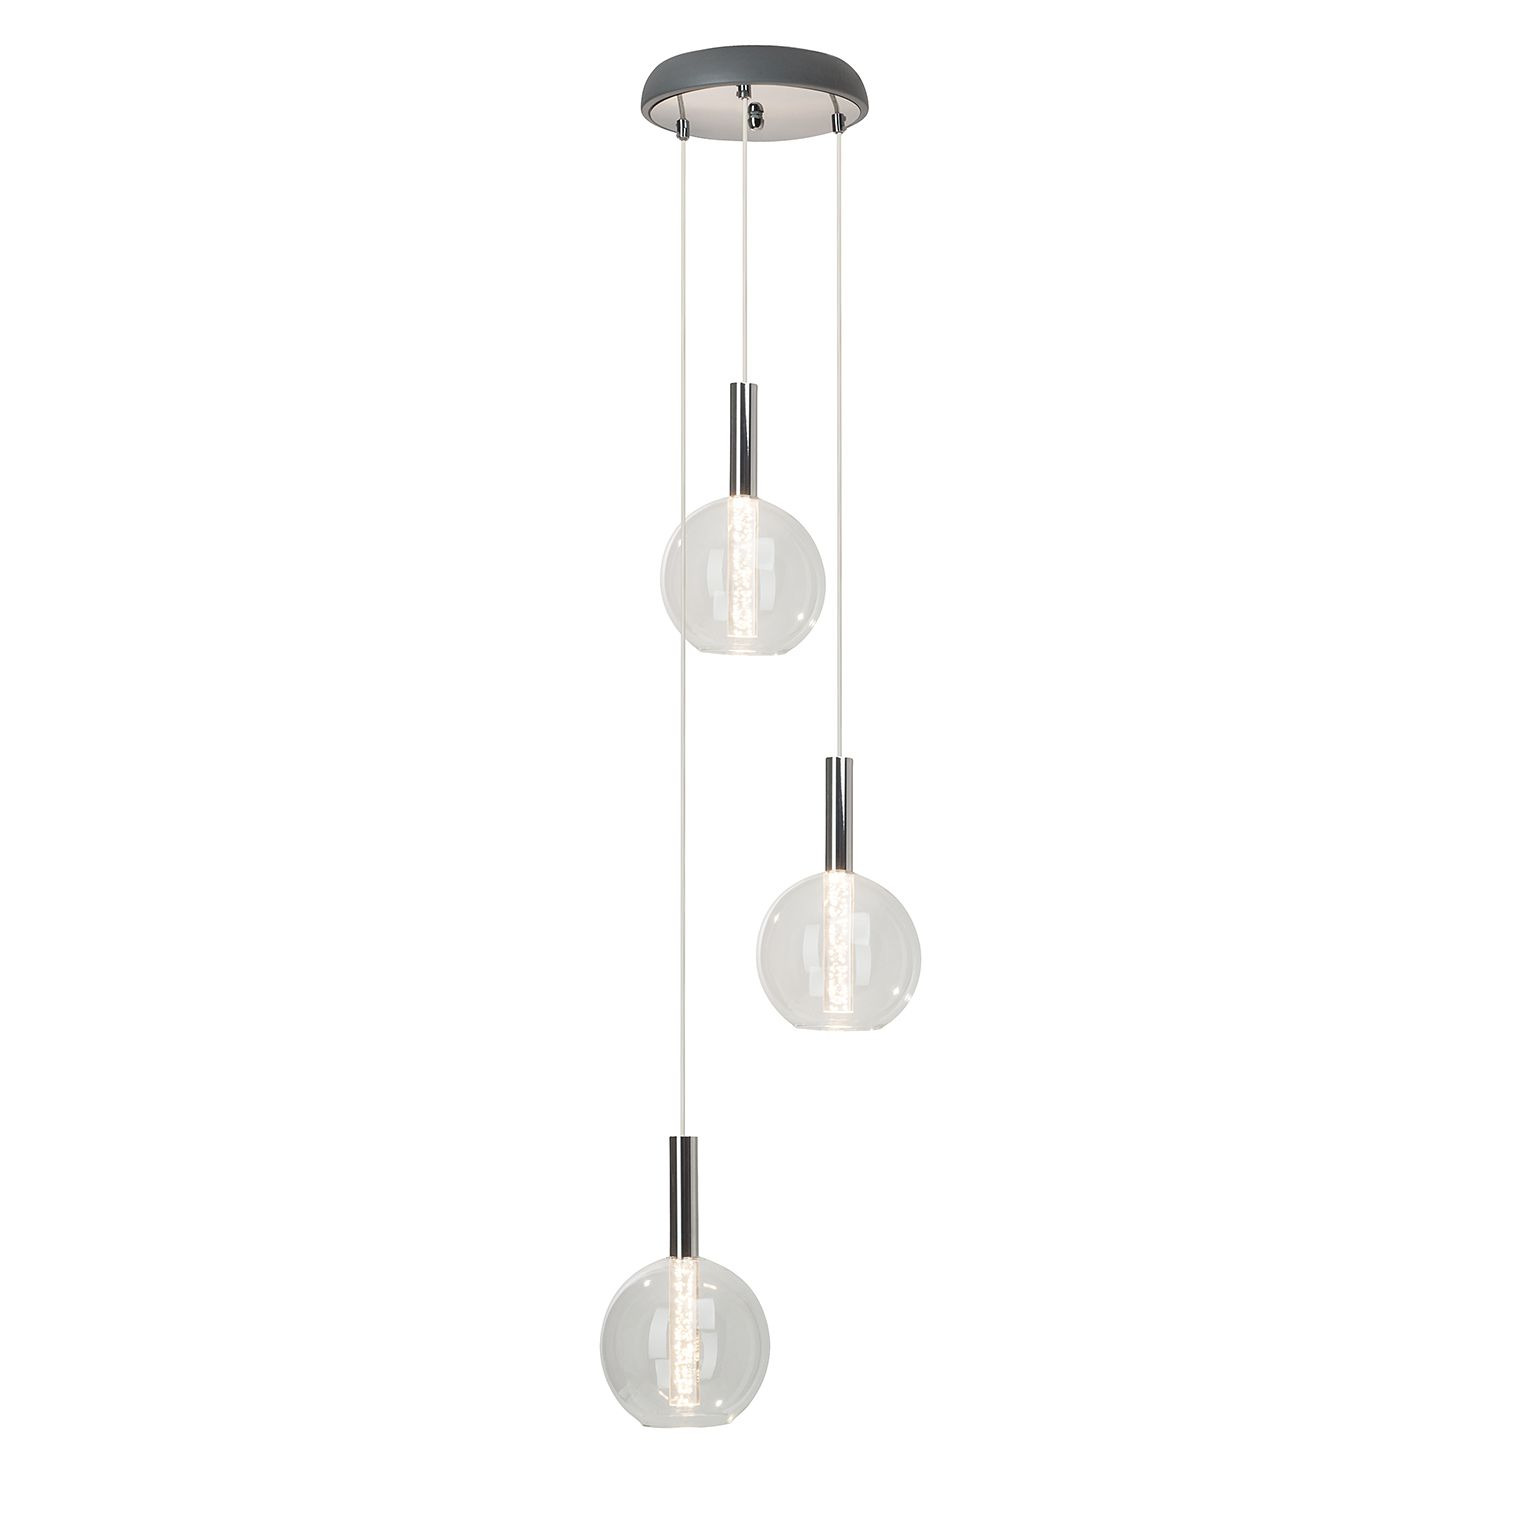 home24 LED-Pendelleuchte Elegant 3-flammig